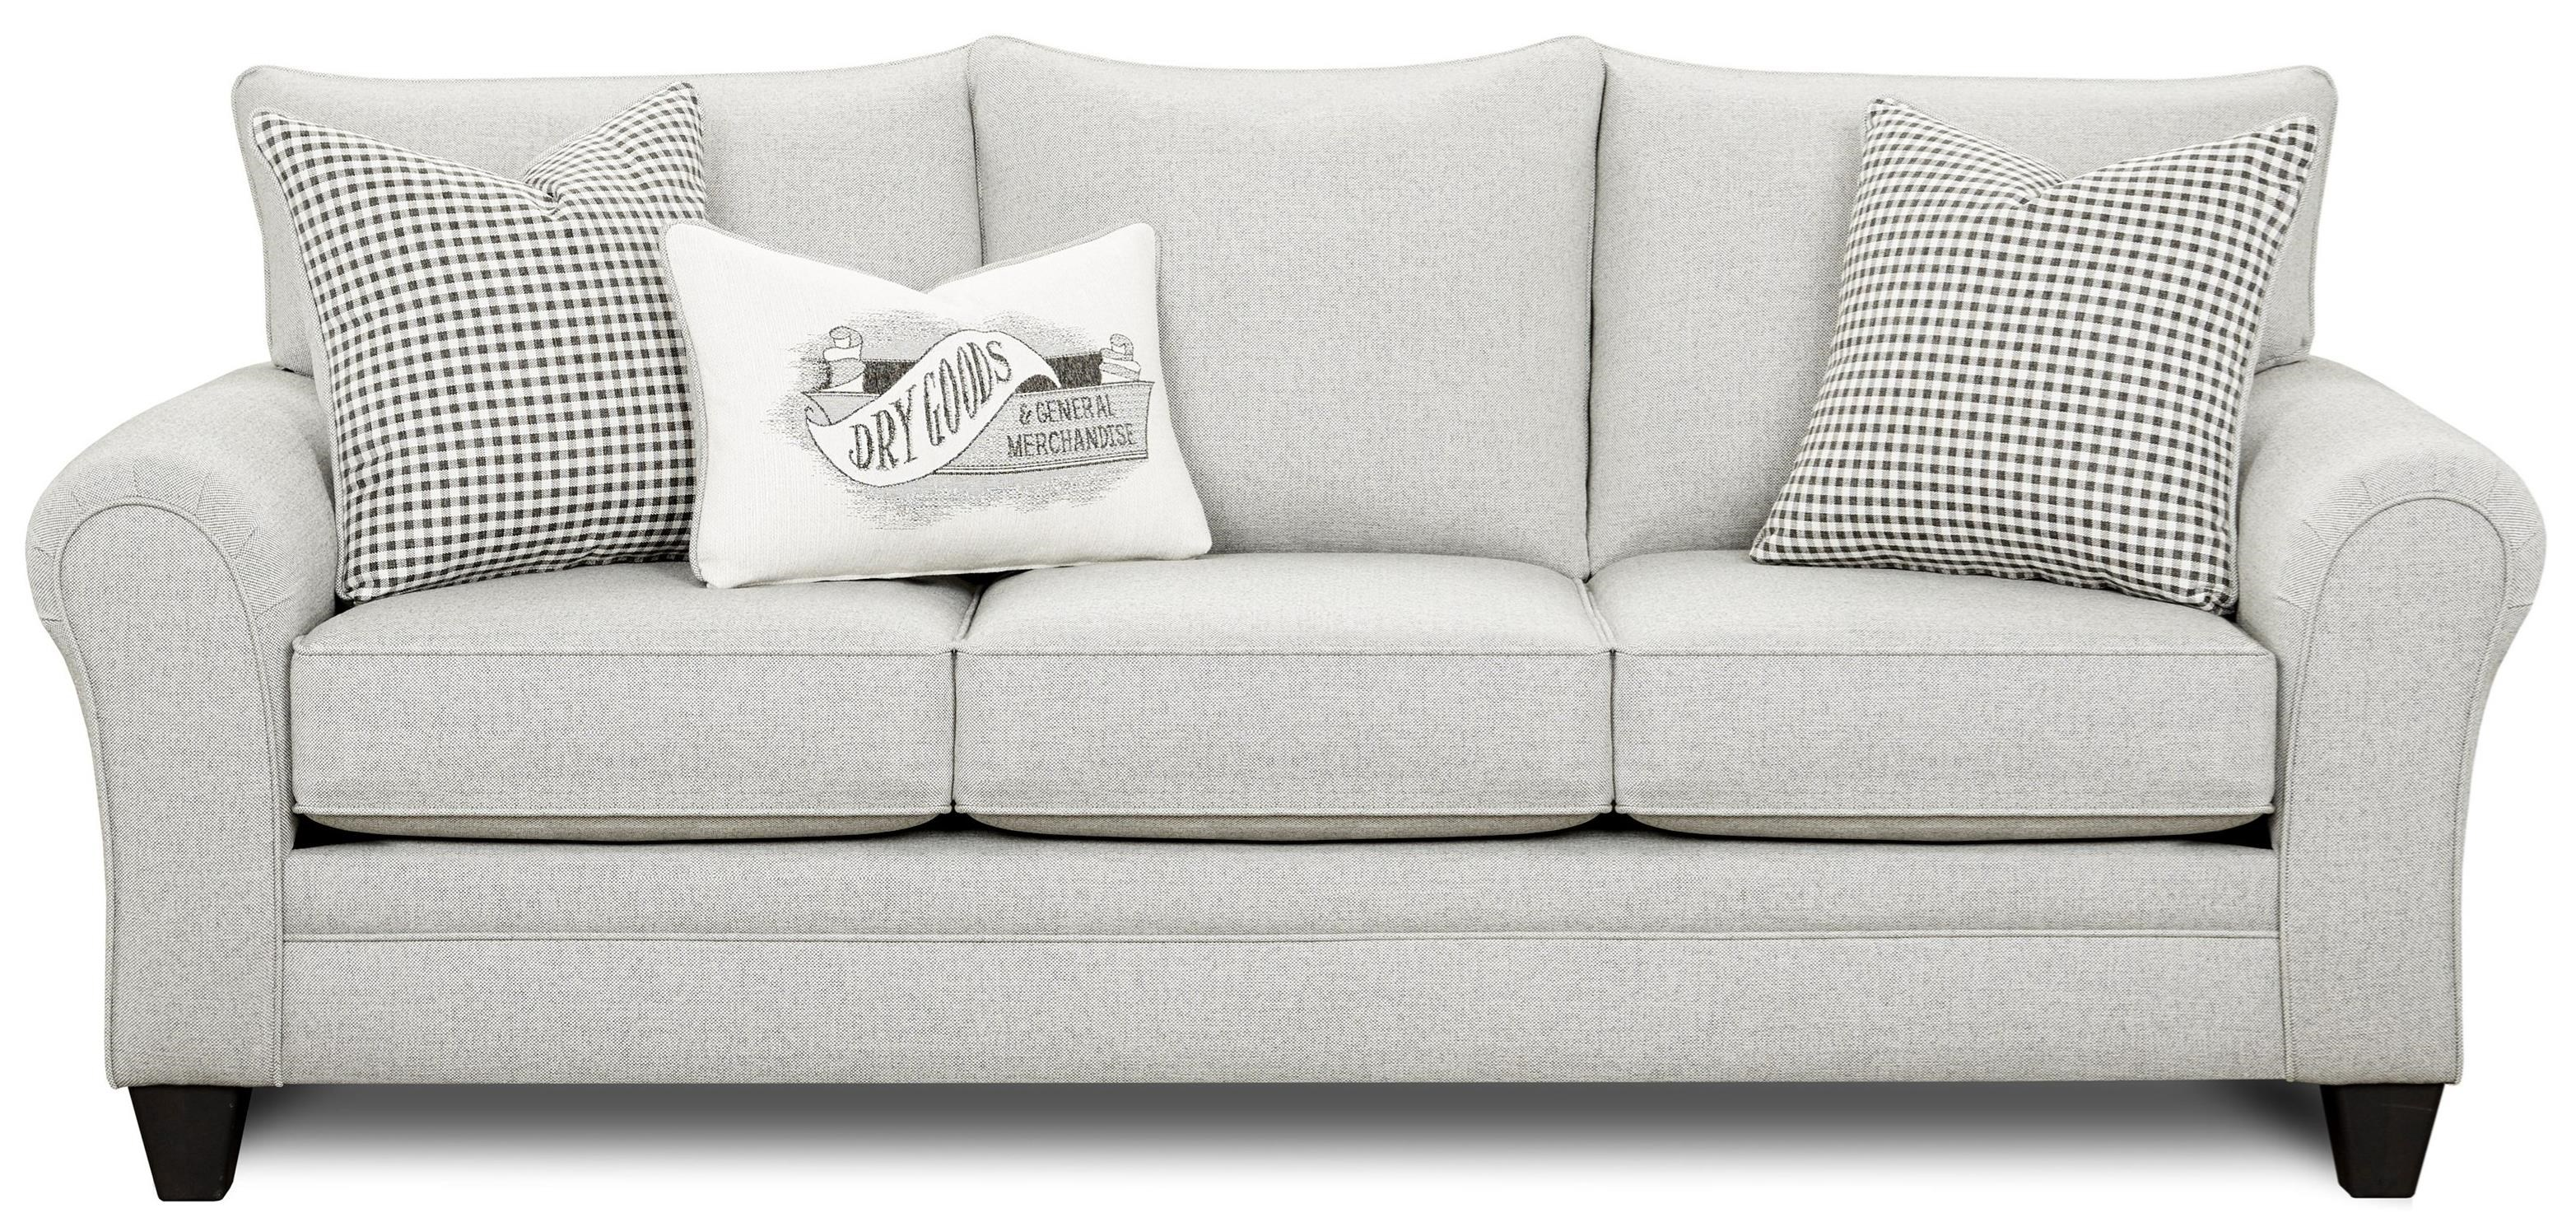 44-00 Sofa by Fusion Furniture at Wilcox Furniture